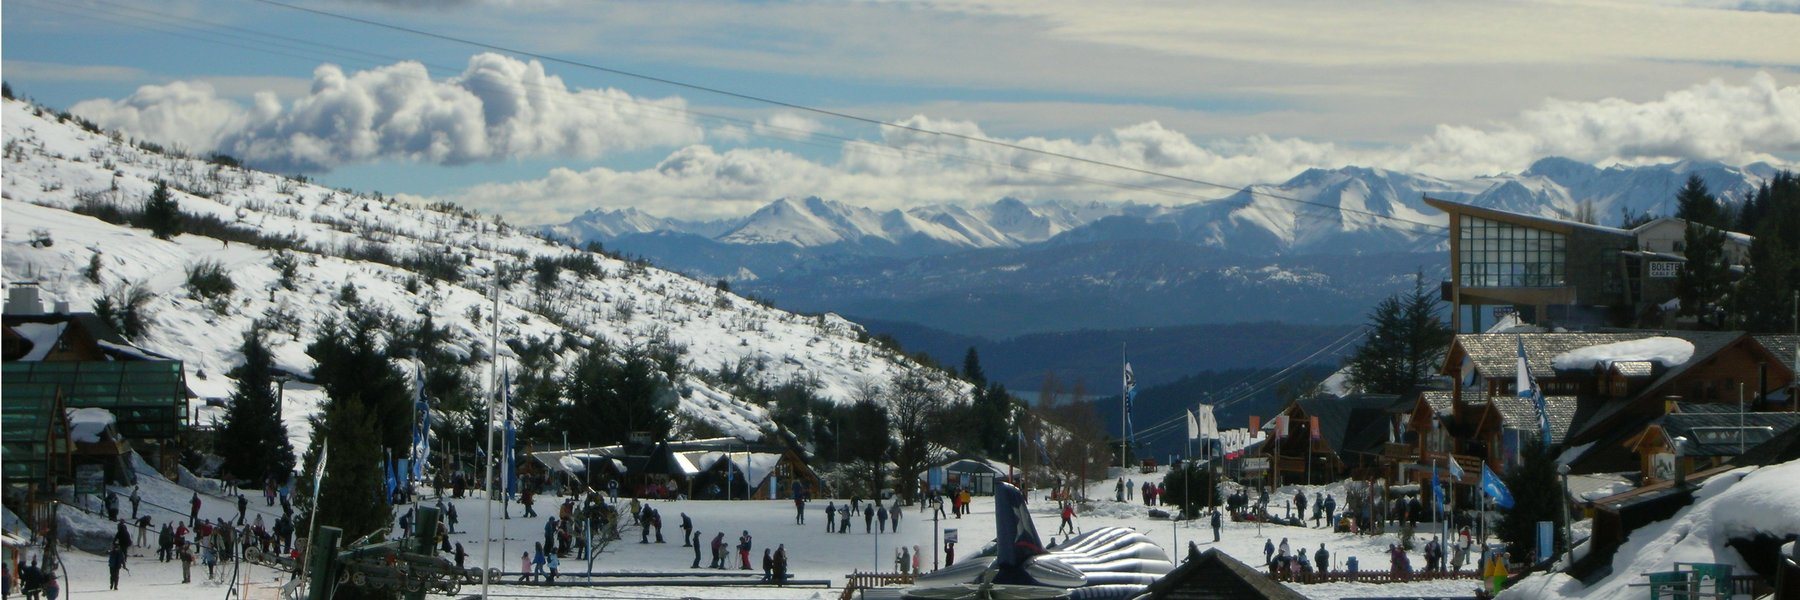 Ski Vacation Package - Bariloche, Argentina